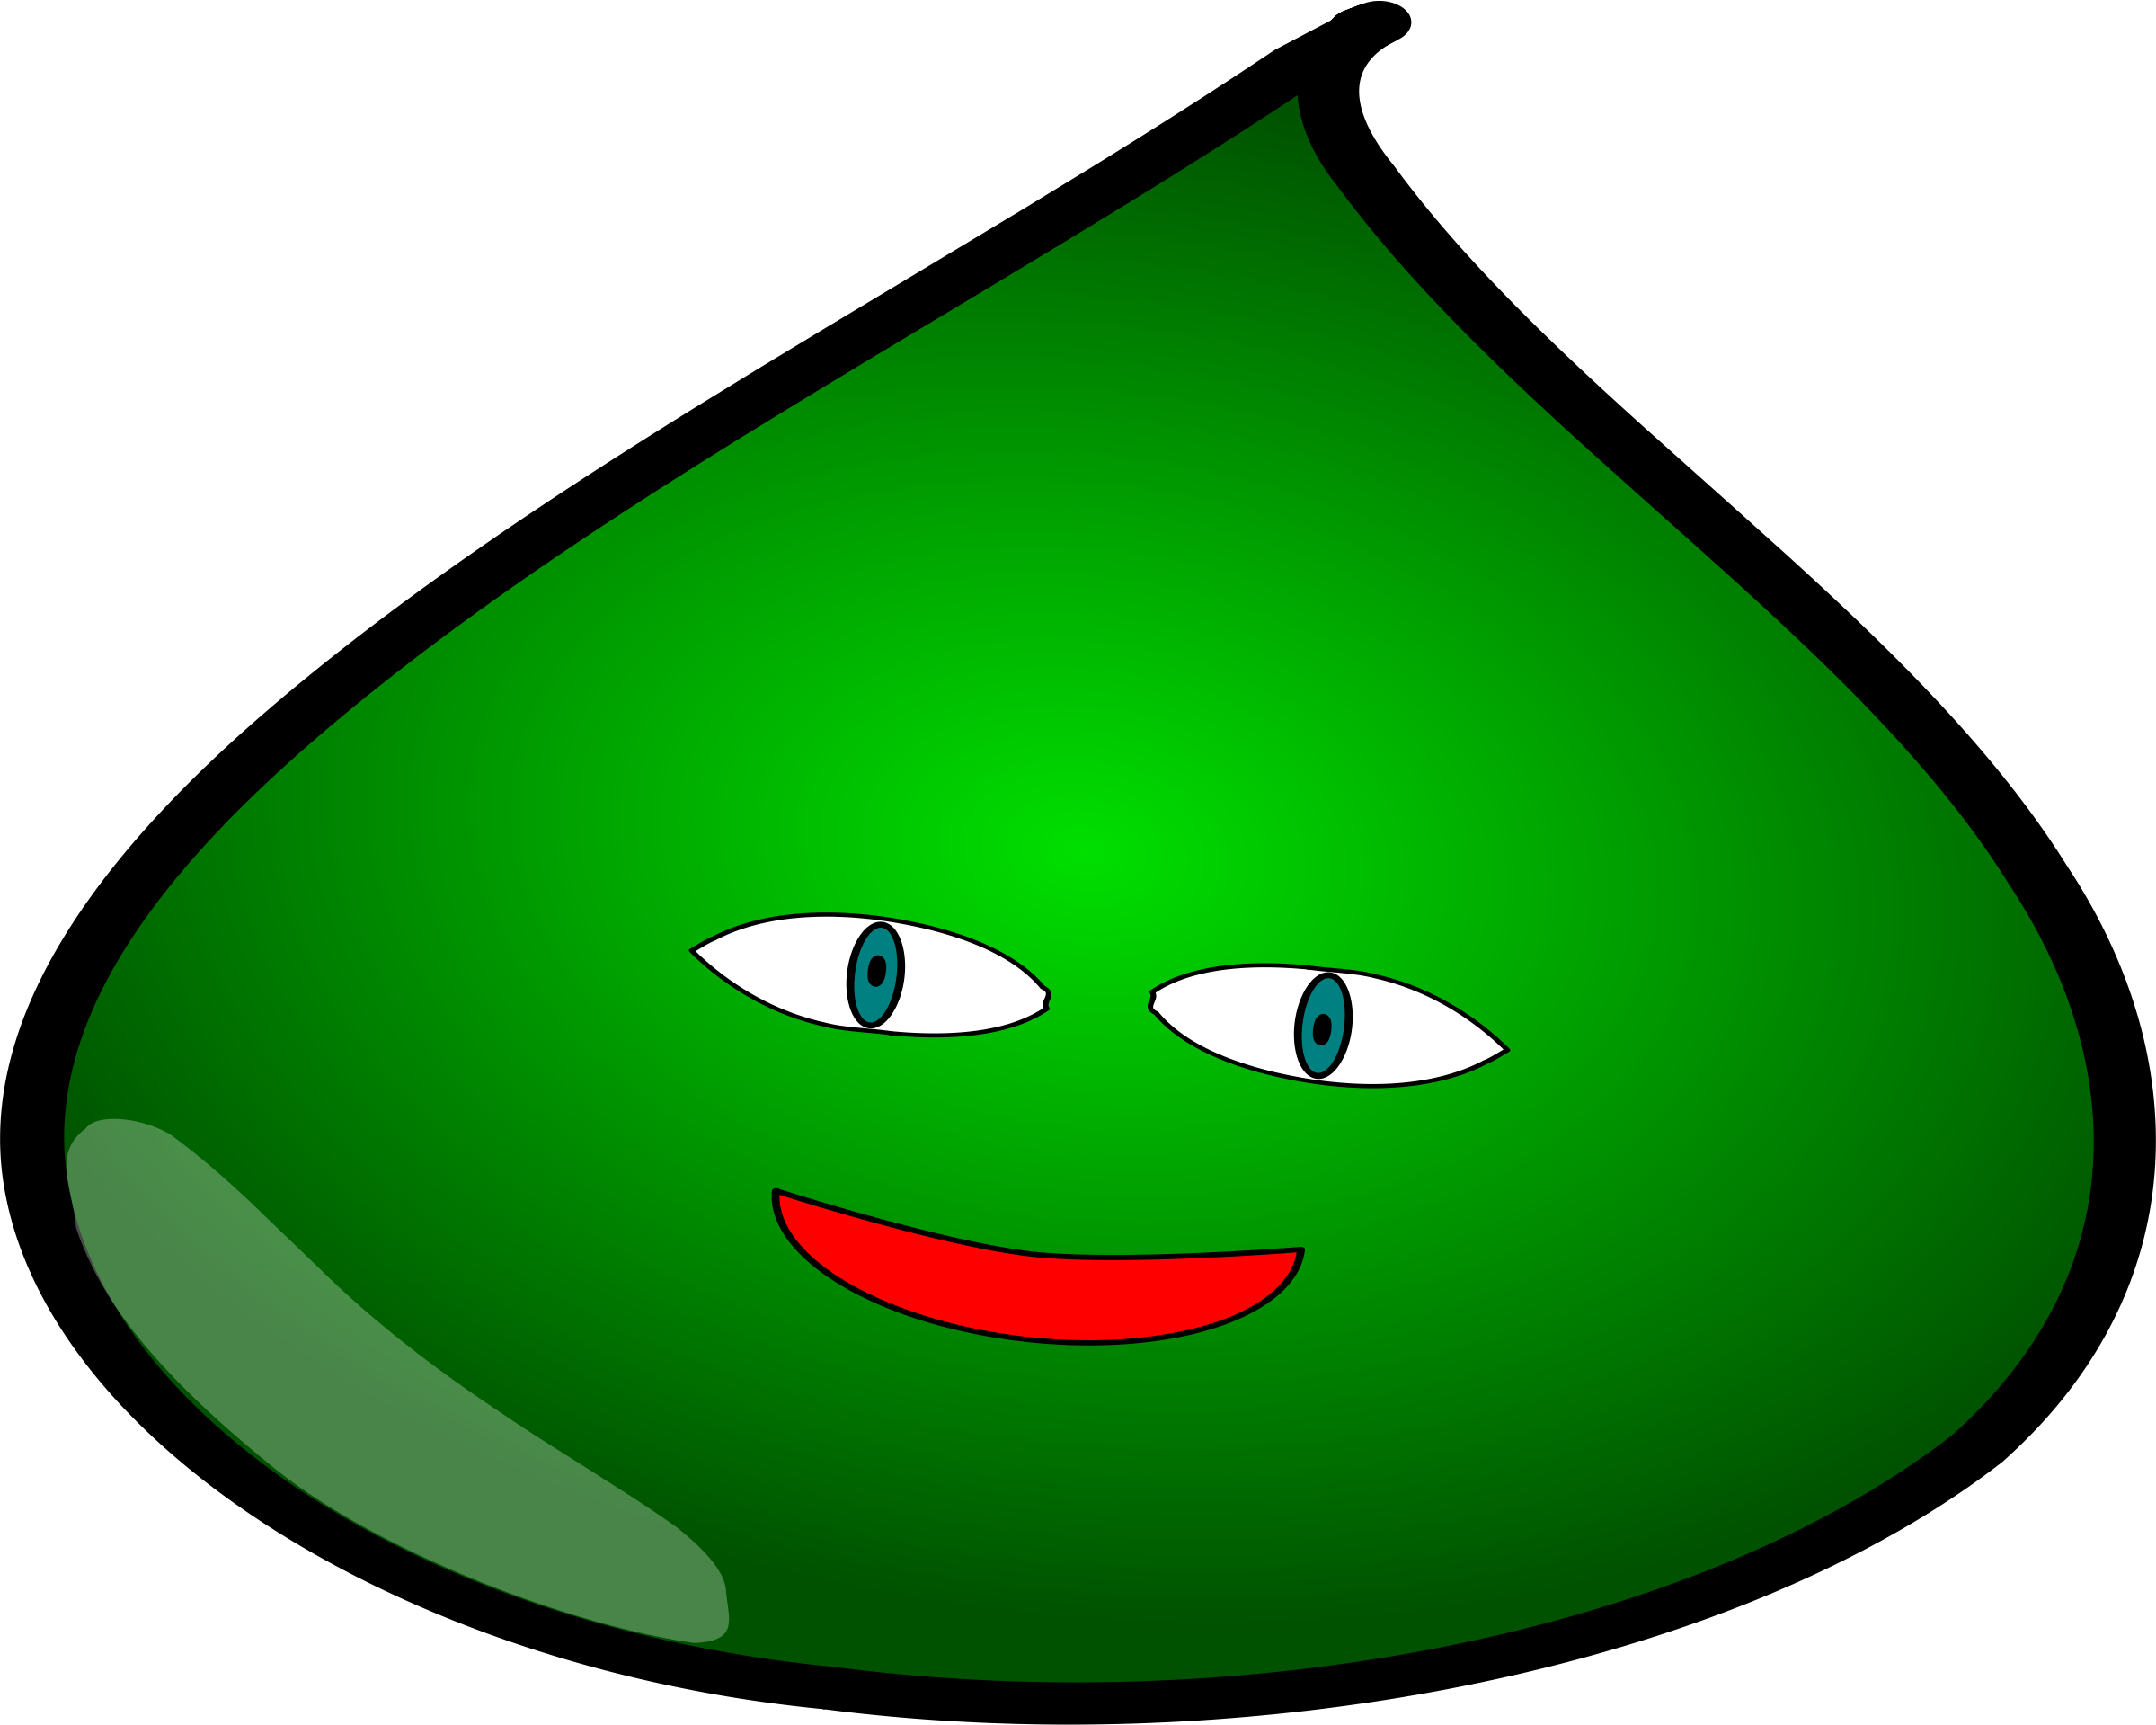 Slime monster png. Green icons free and